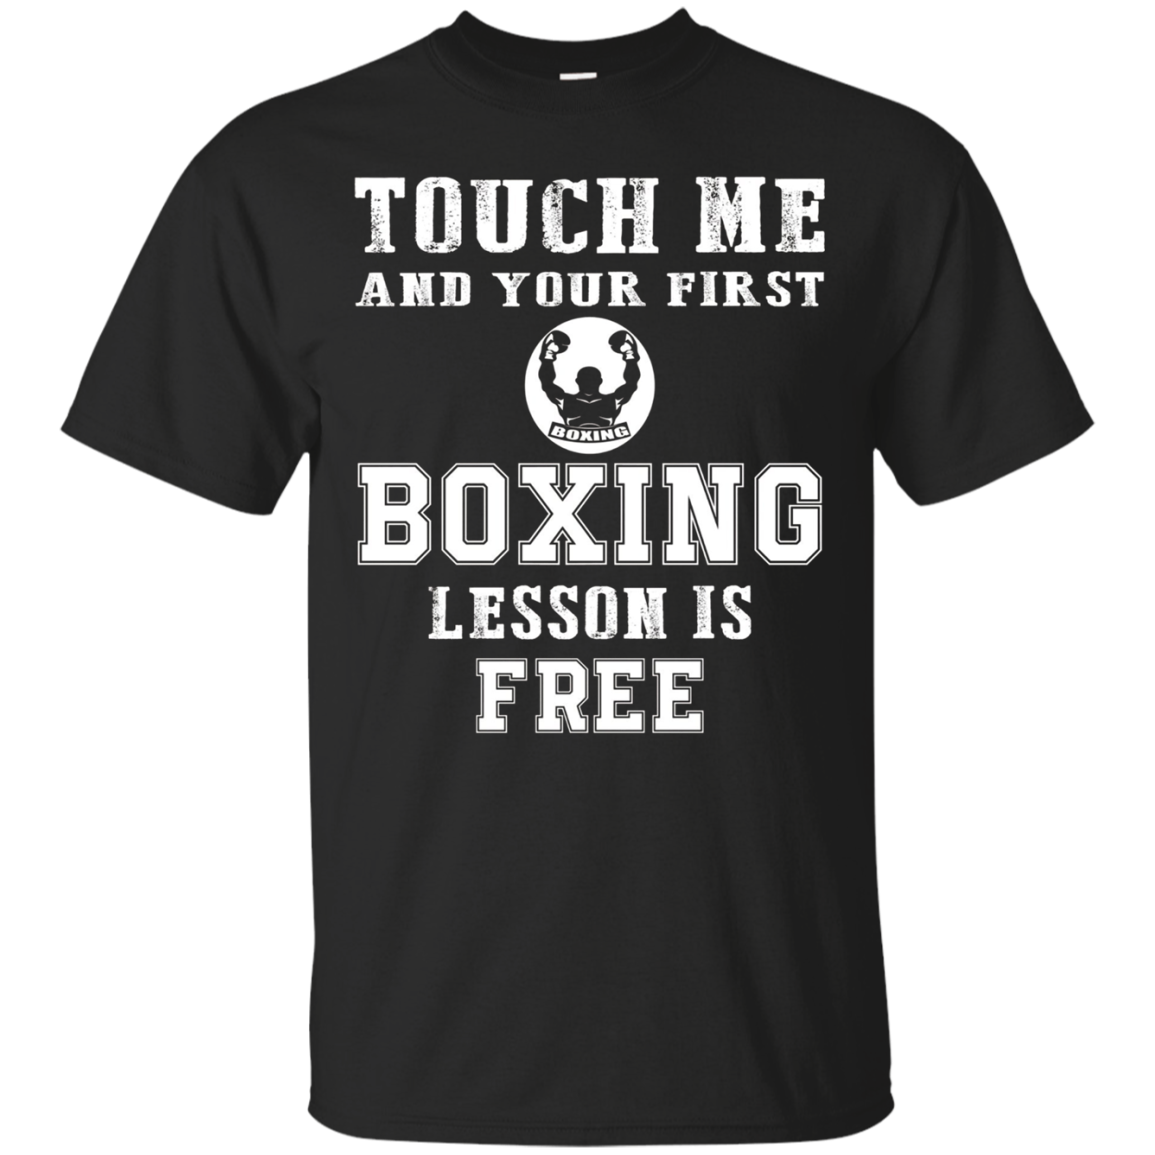 Touch Me and your first Boxing lesson is free Boxing T-Shirt